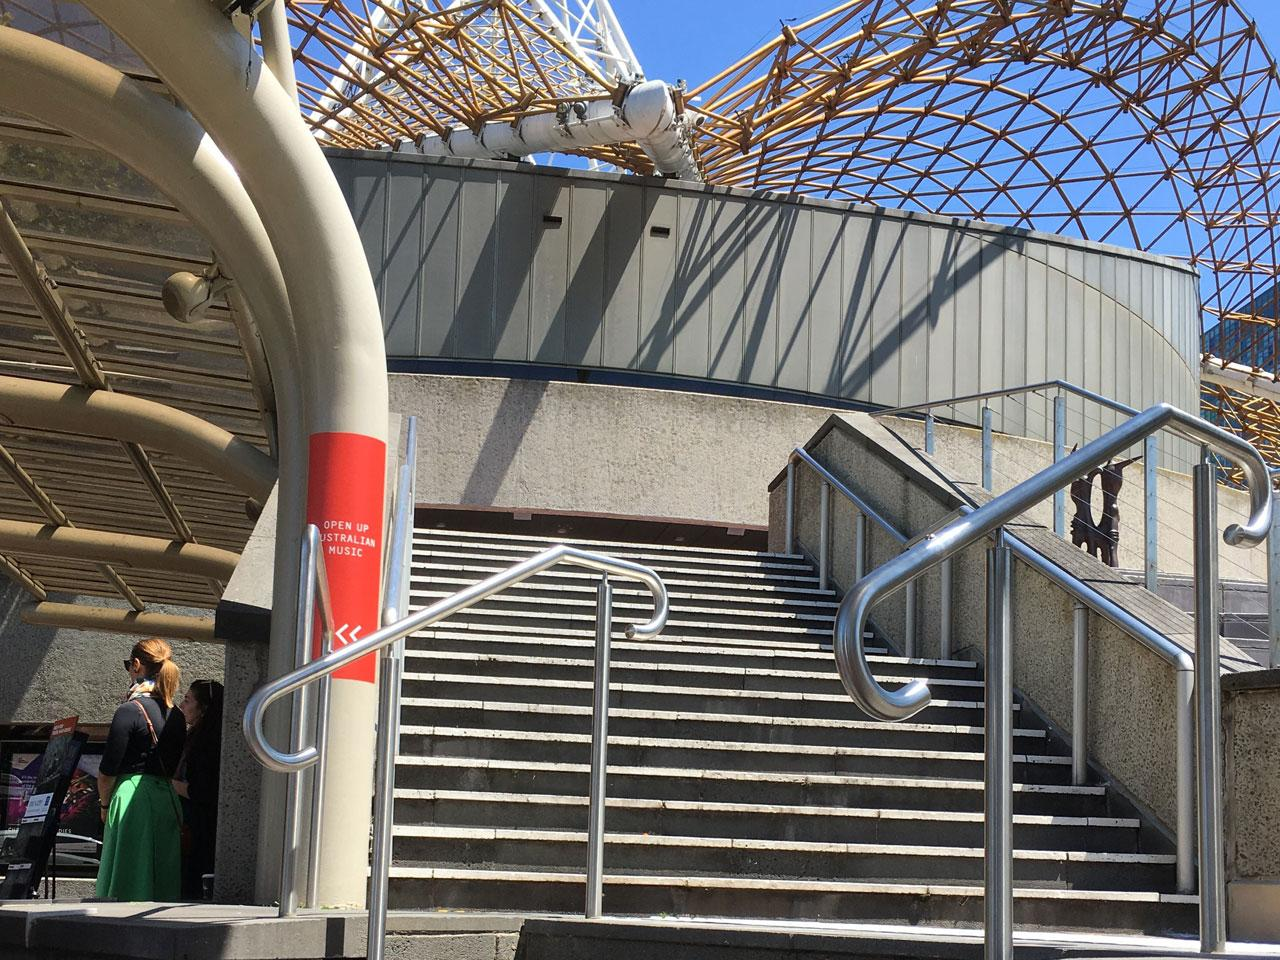 NEW-HANDRAILSTGSI-Mechcon-Handrails-and-Balustrades-Melbourne-Victoria-Arts-Centre-Melbourne